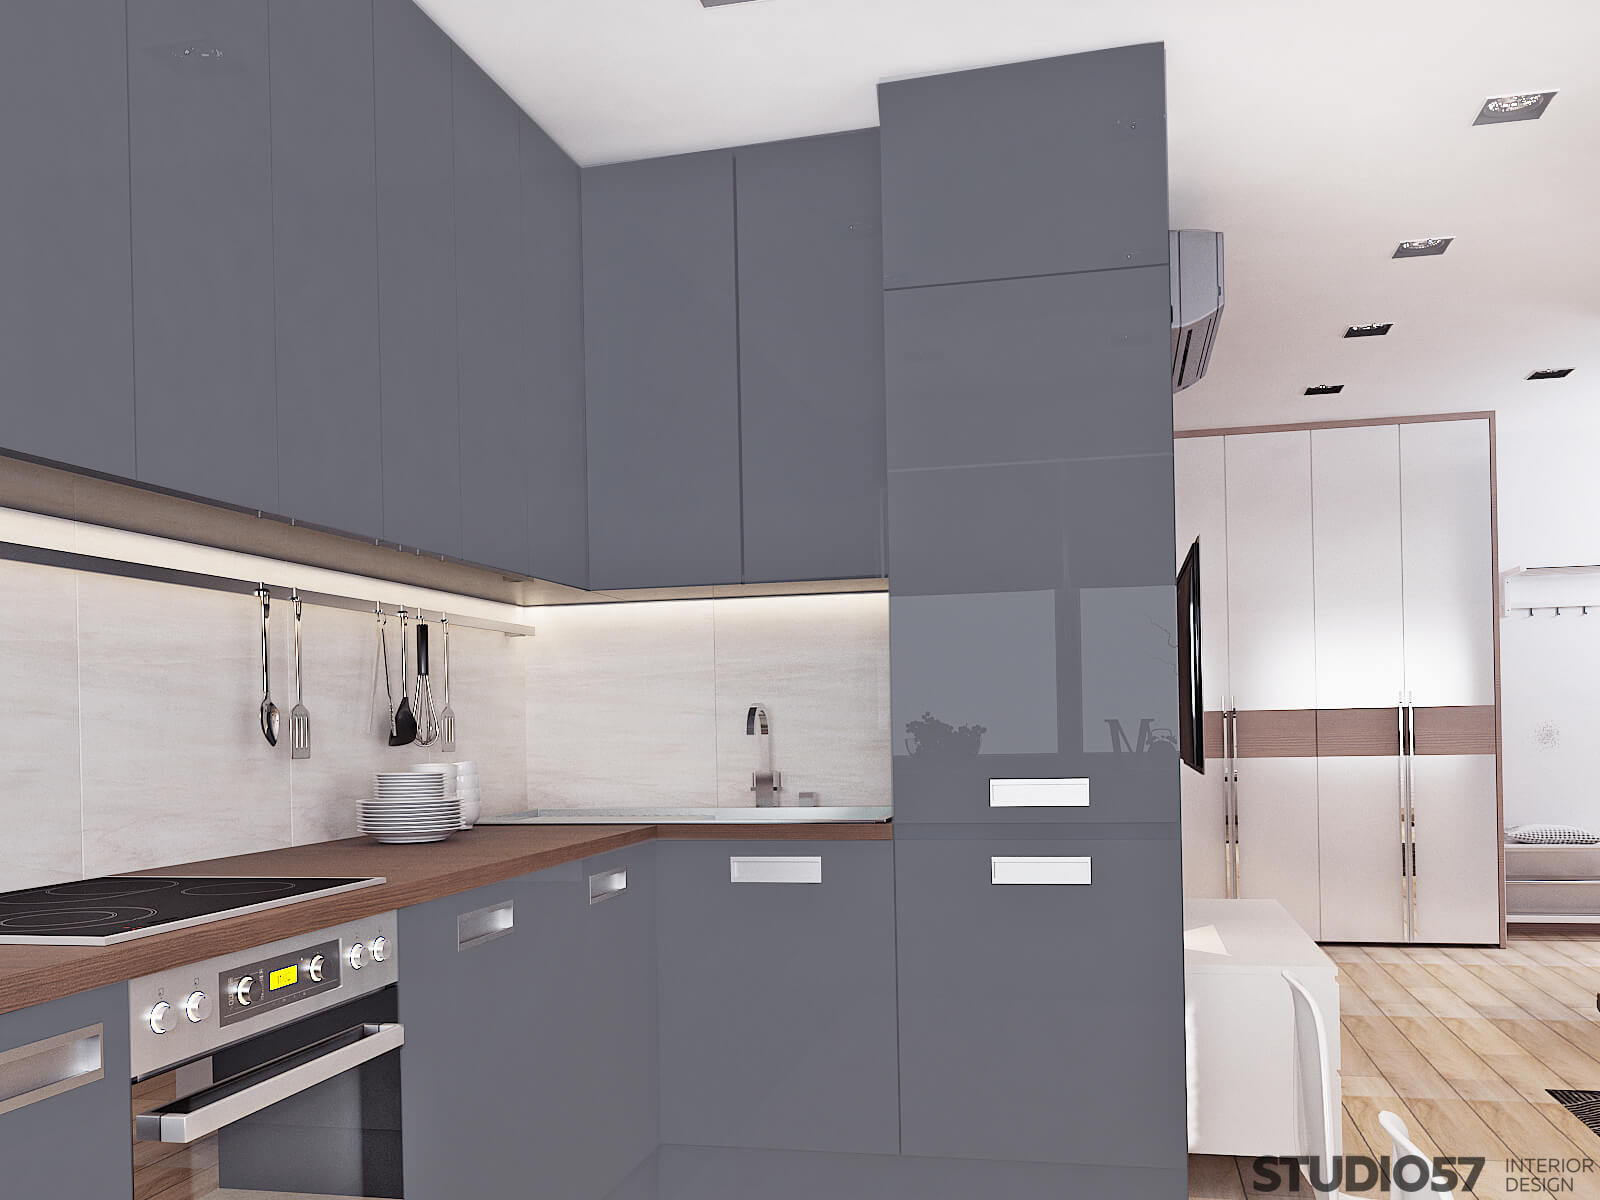 Kitchen design with blue cabinets